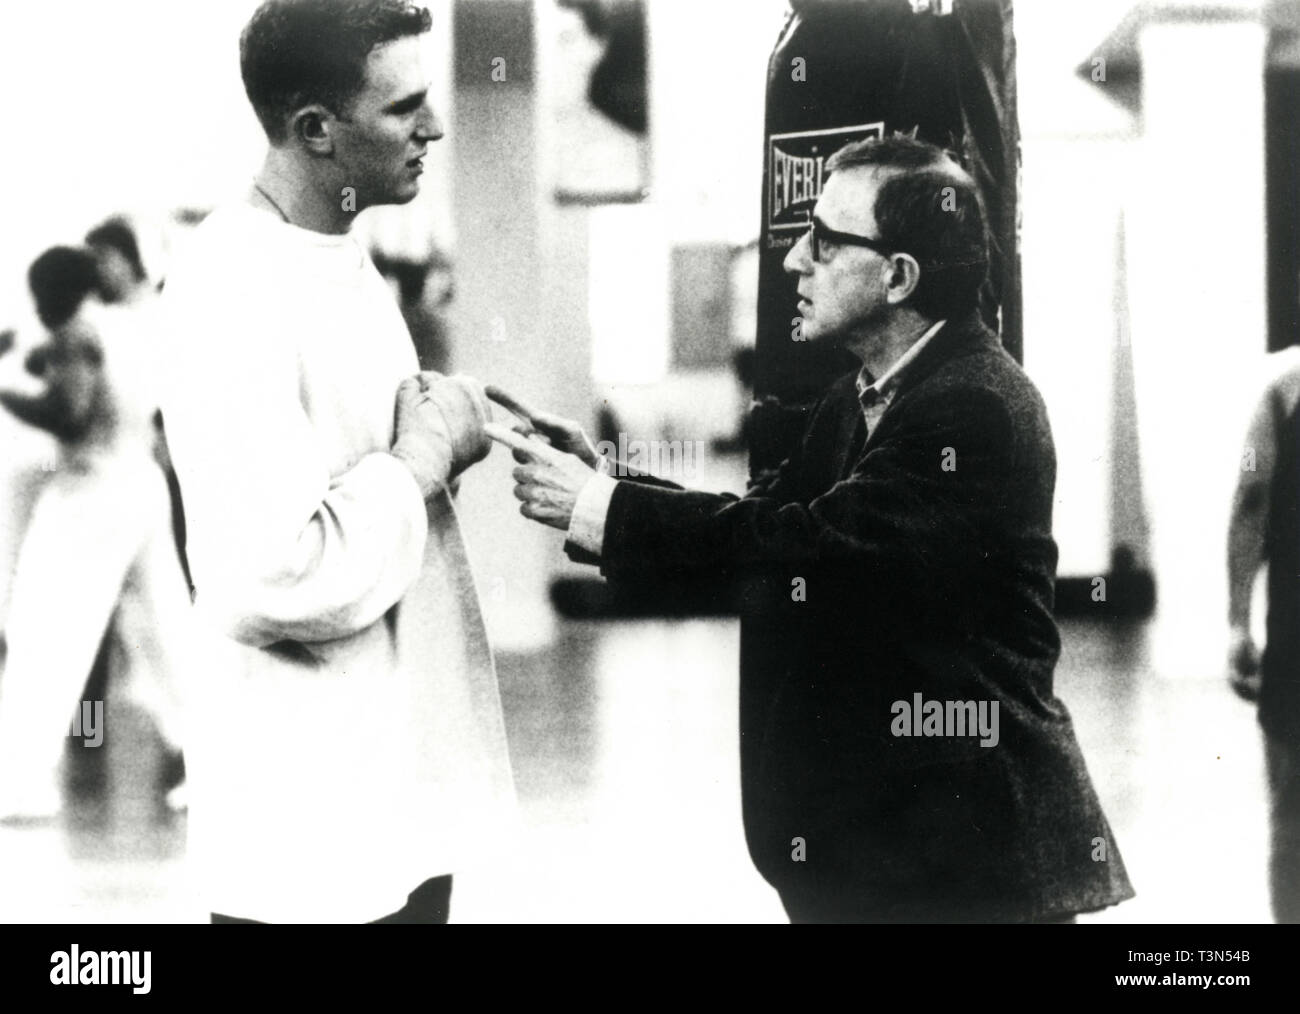 Actors Michael Rapaport and Woody Allen in the movie Mighty Aphrodite, 1994 - Stock Image